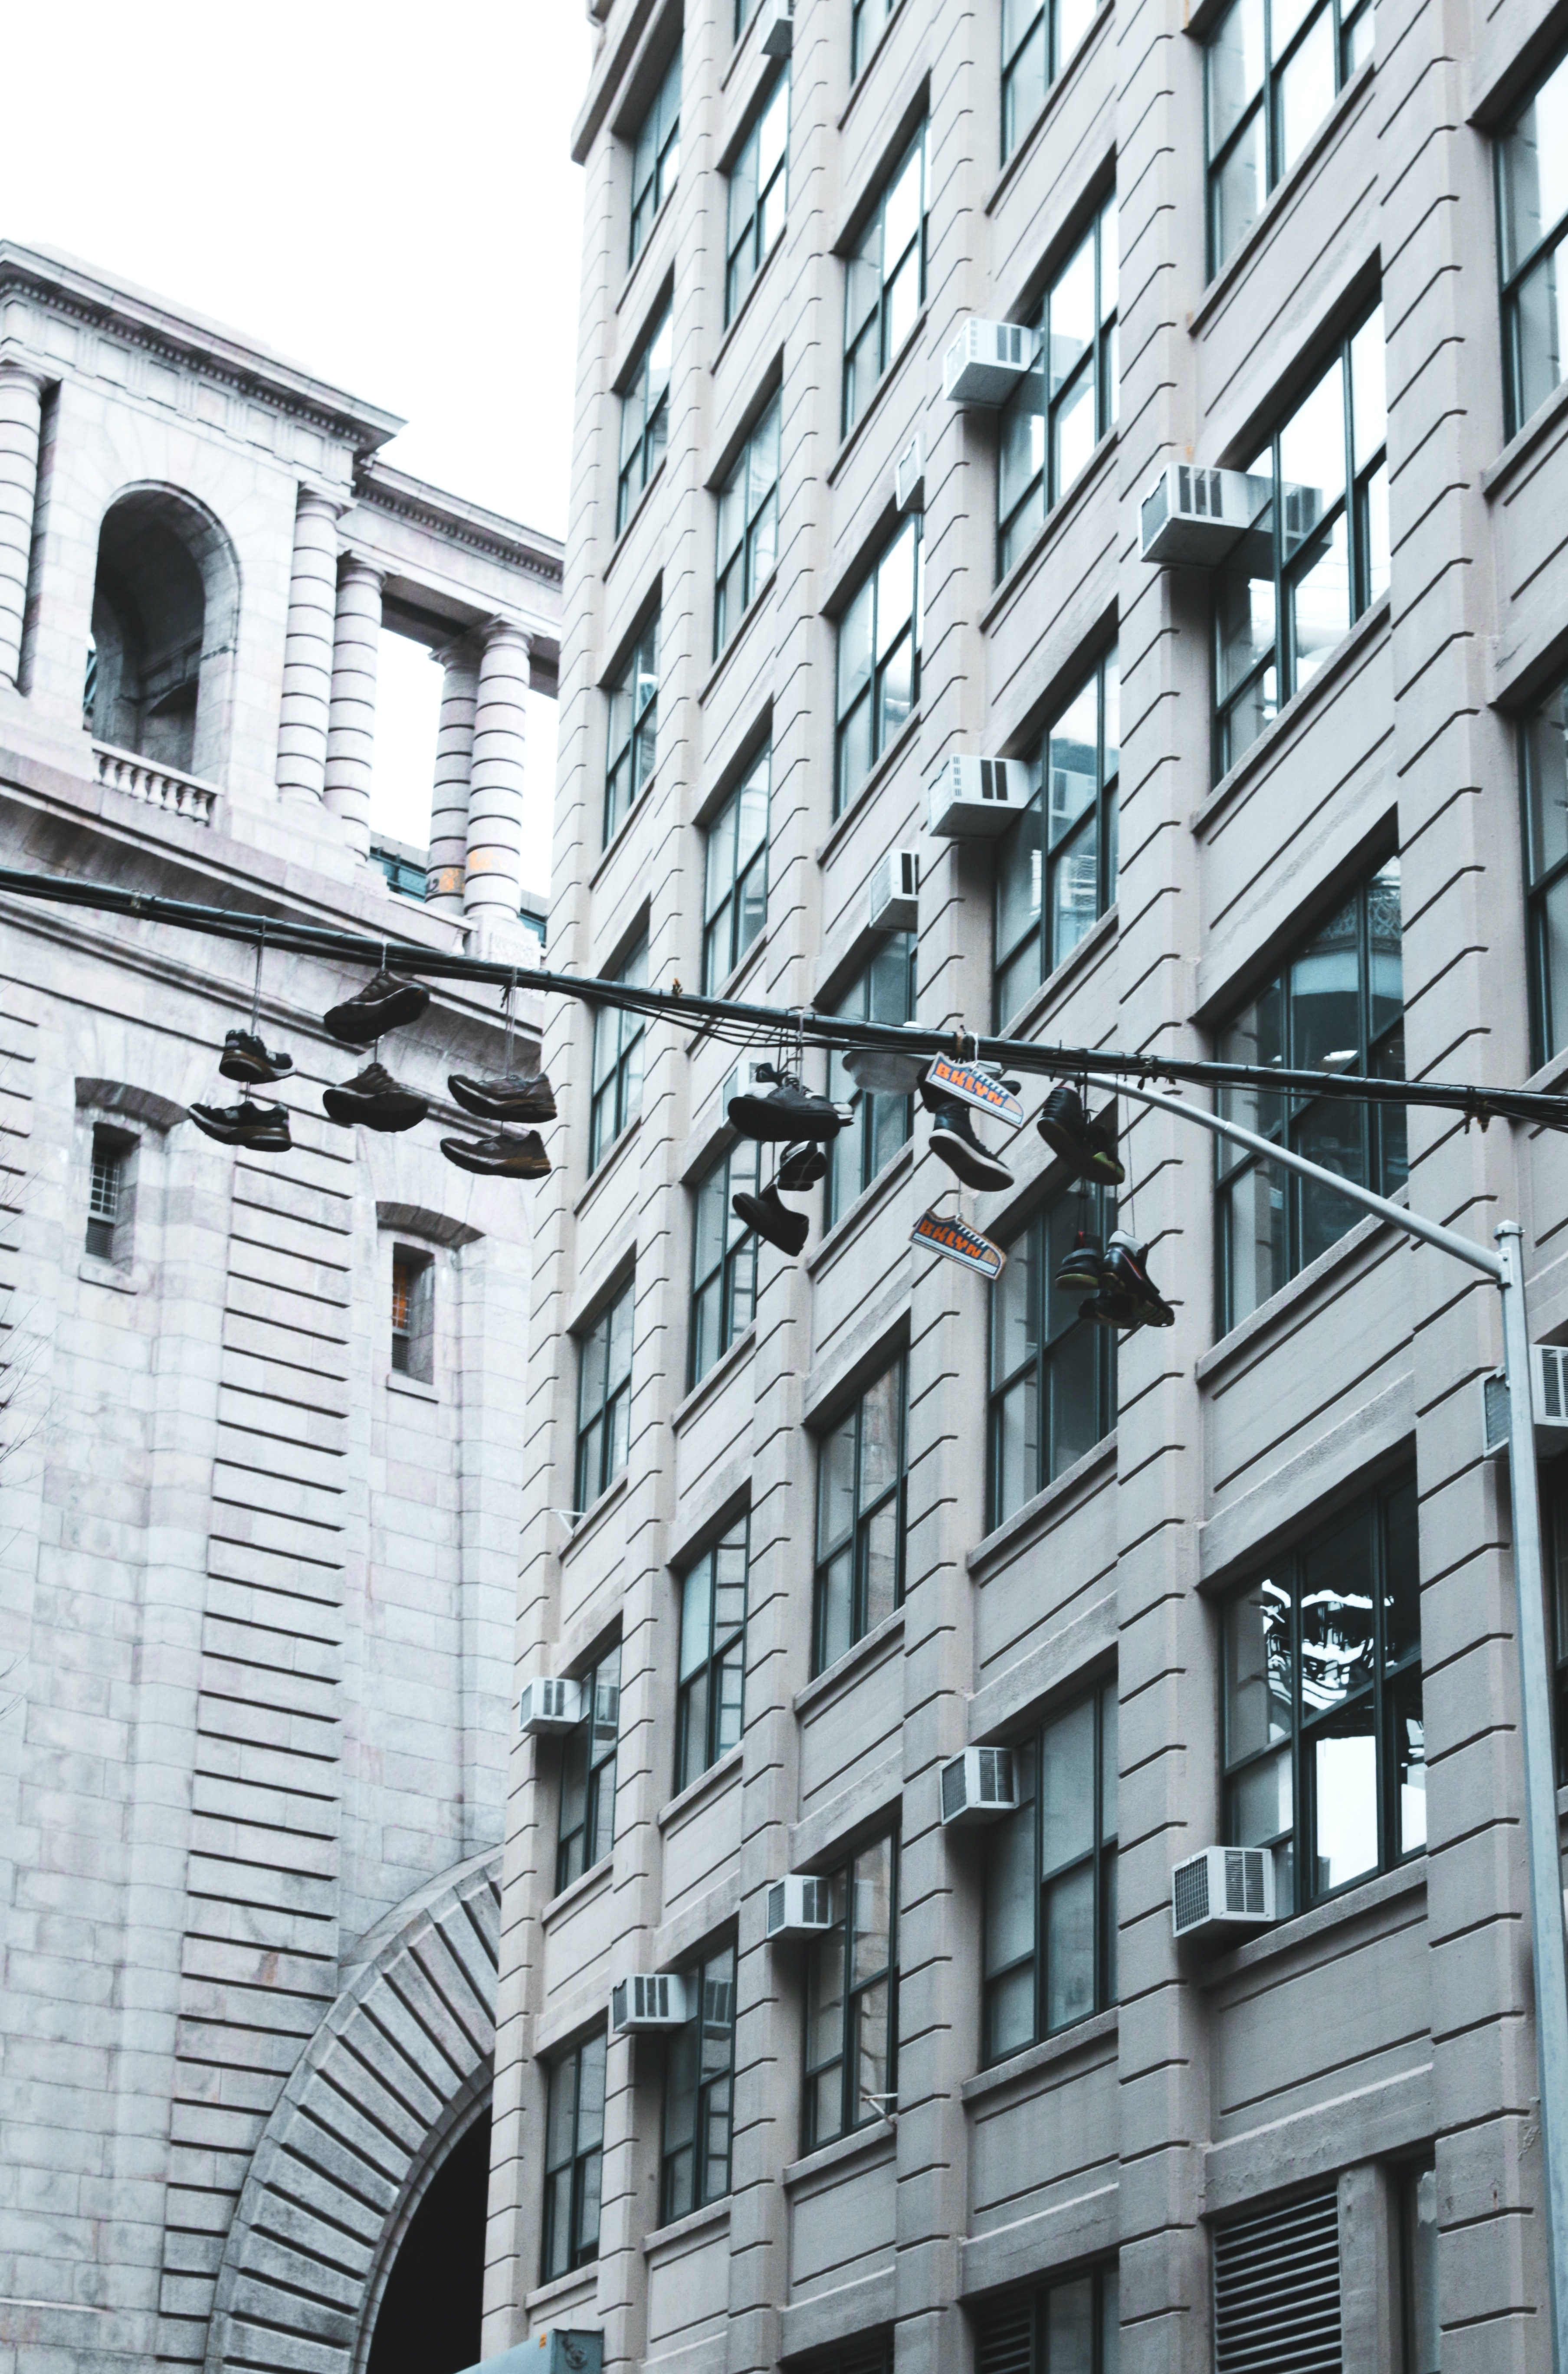 shoes hanging on street pole